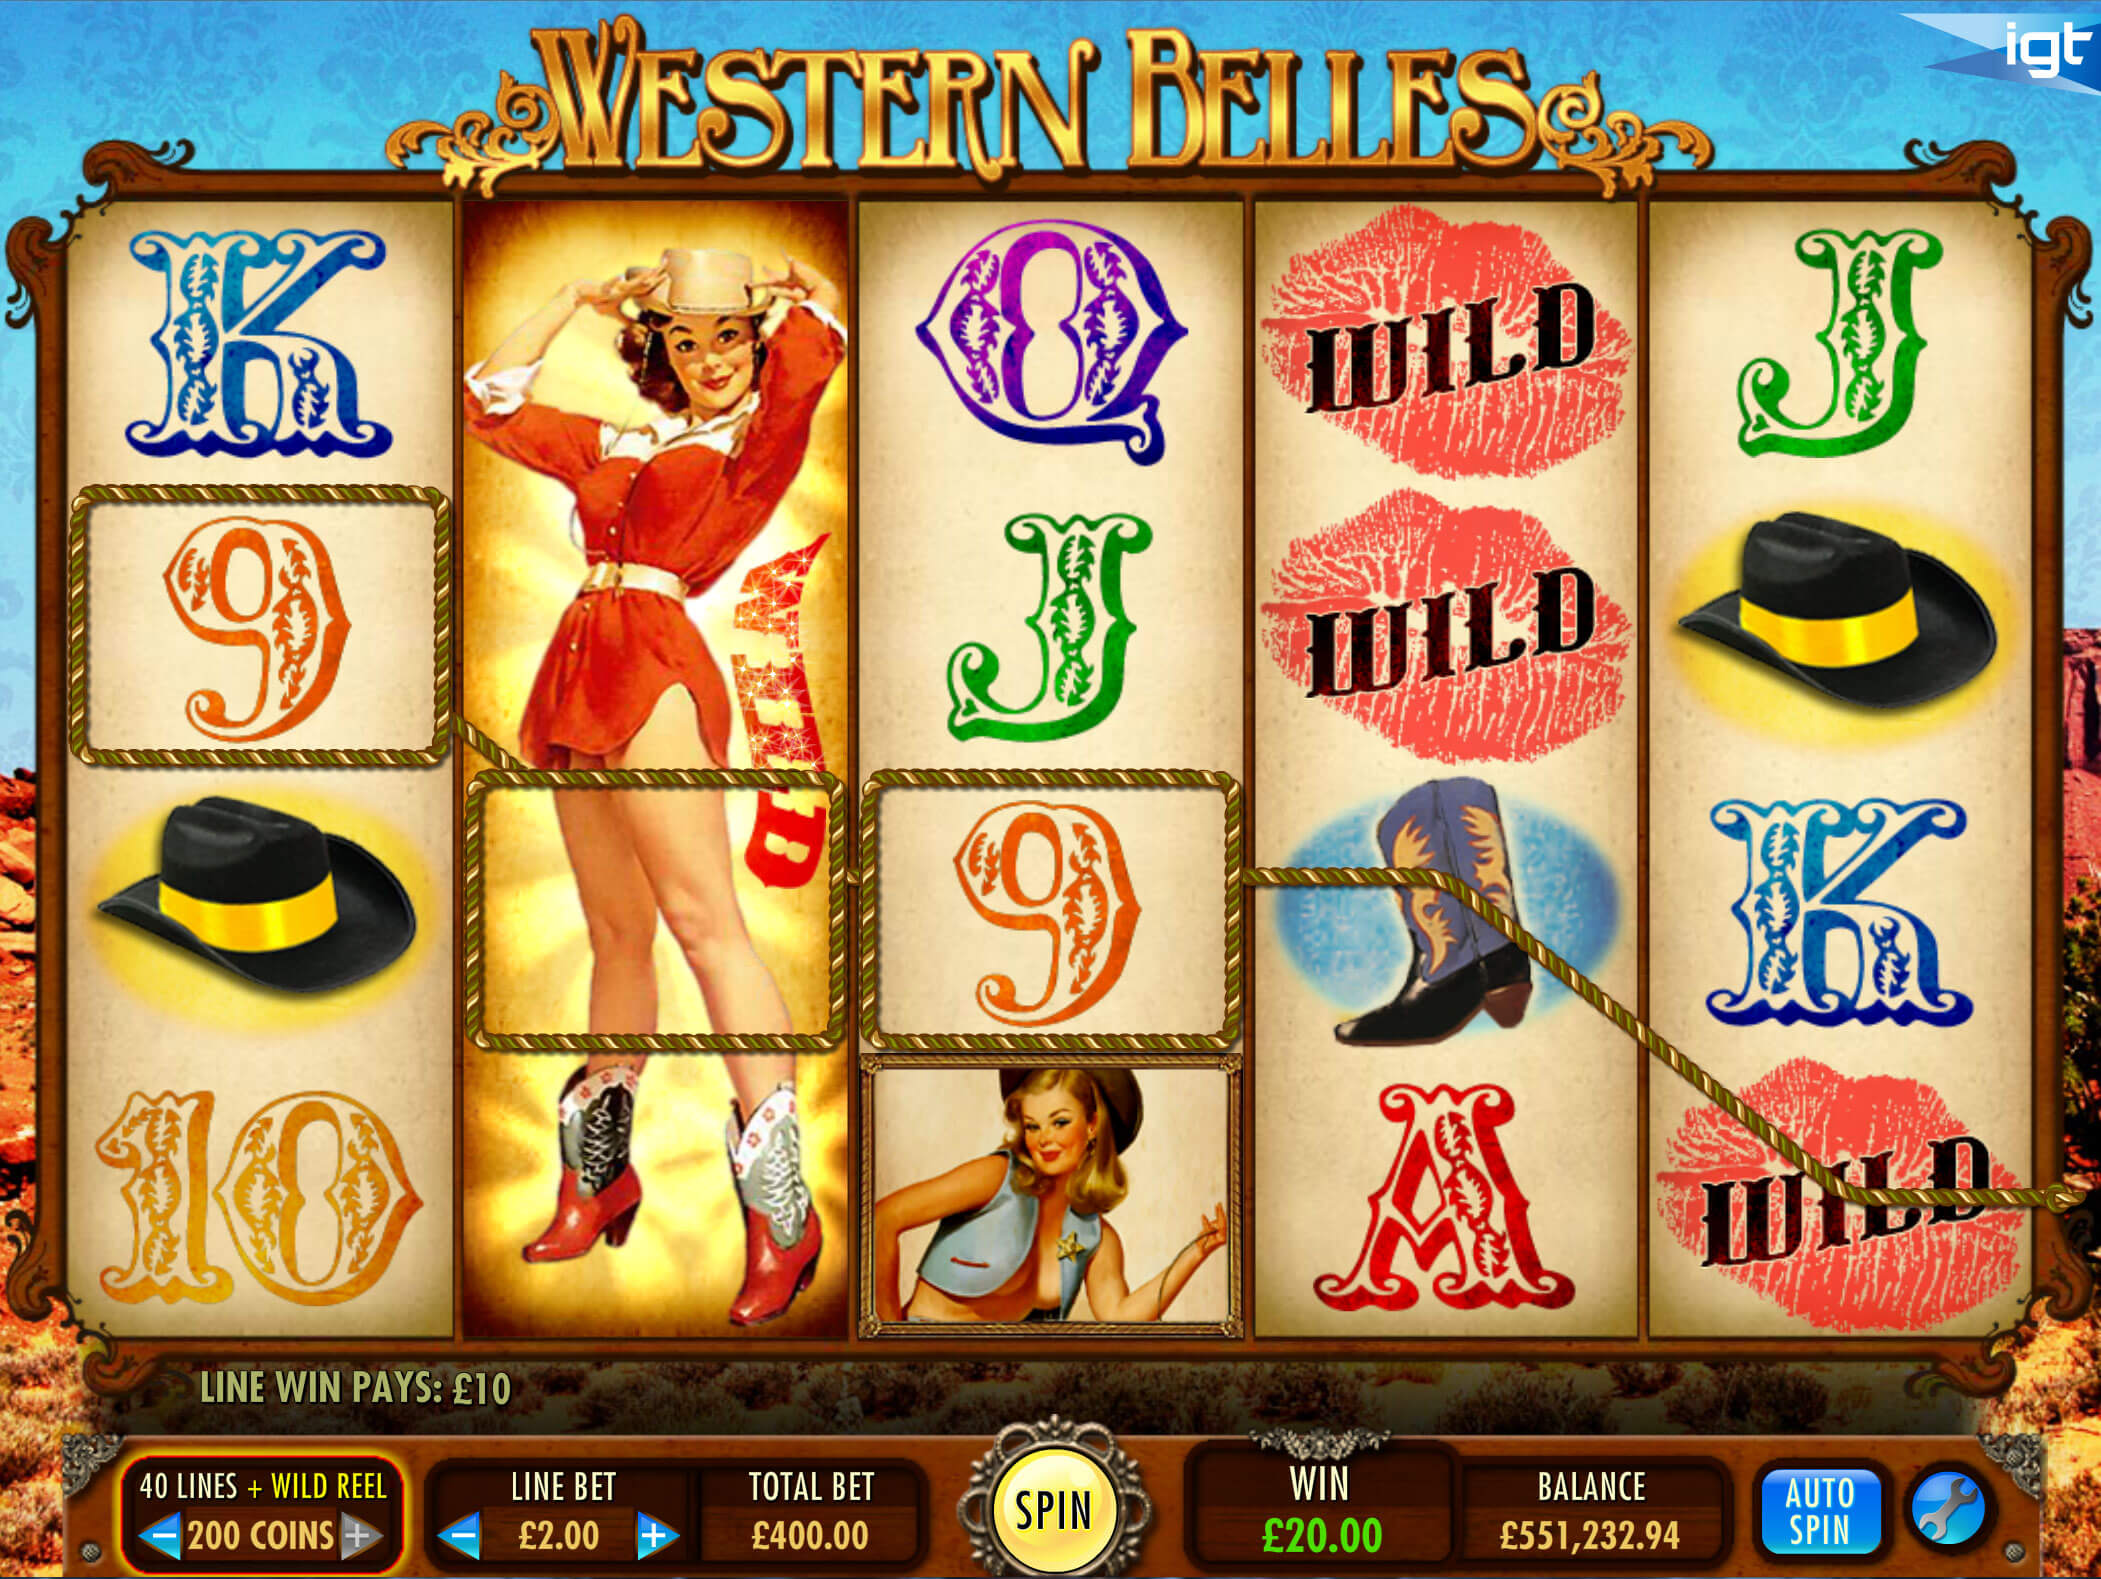 Screenshot from game: Western Welles